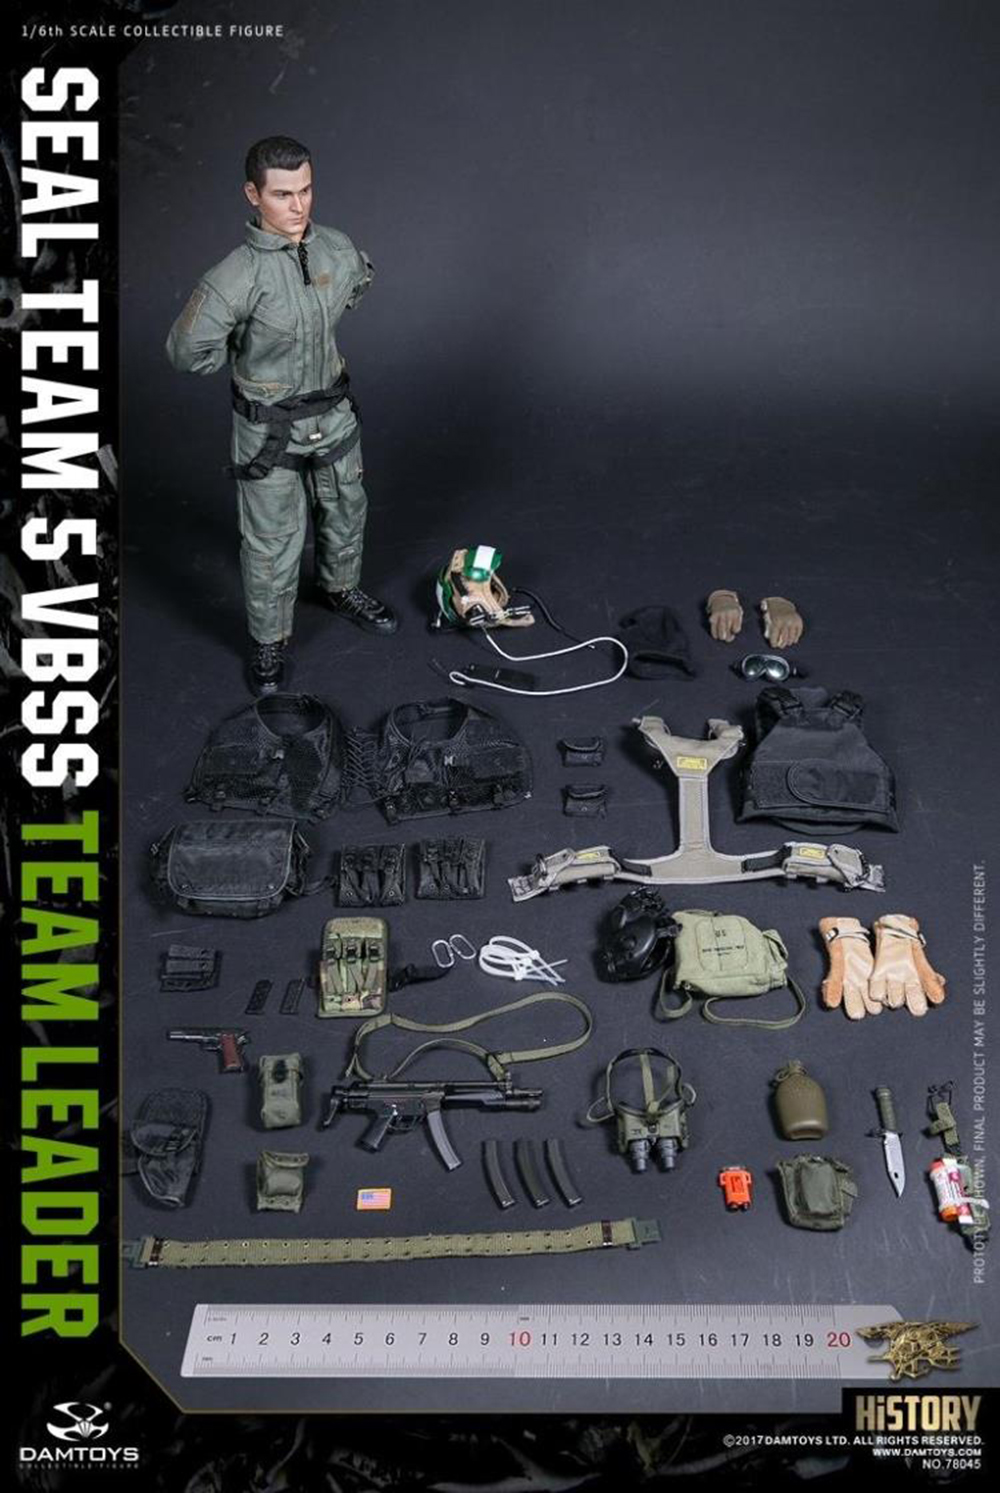 Damtoys Action Figures VBSS Team Leader Combat Boots for Feet - 1//6 Scale